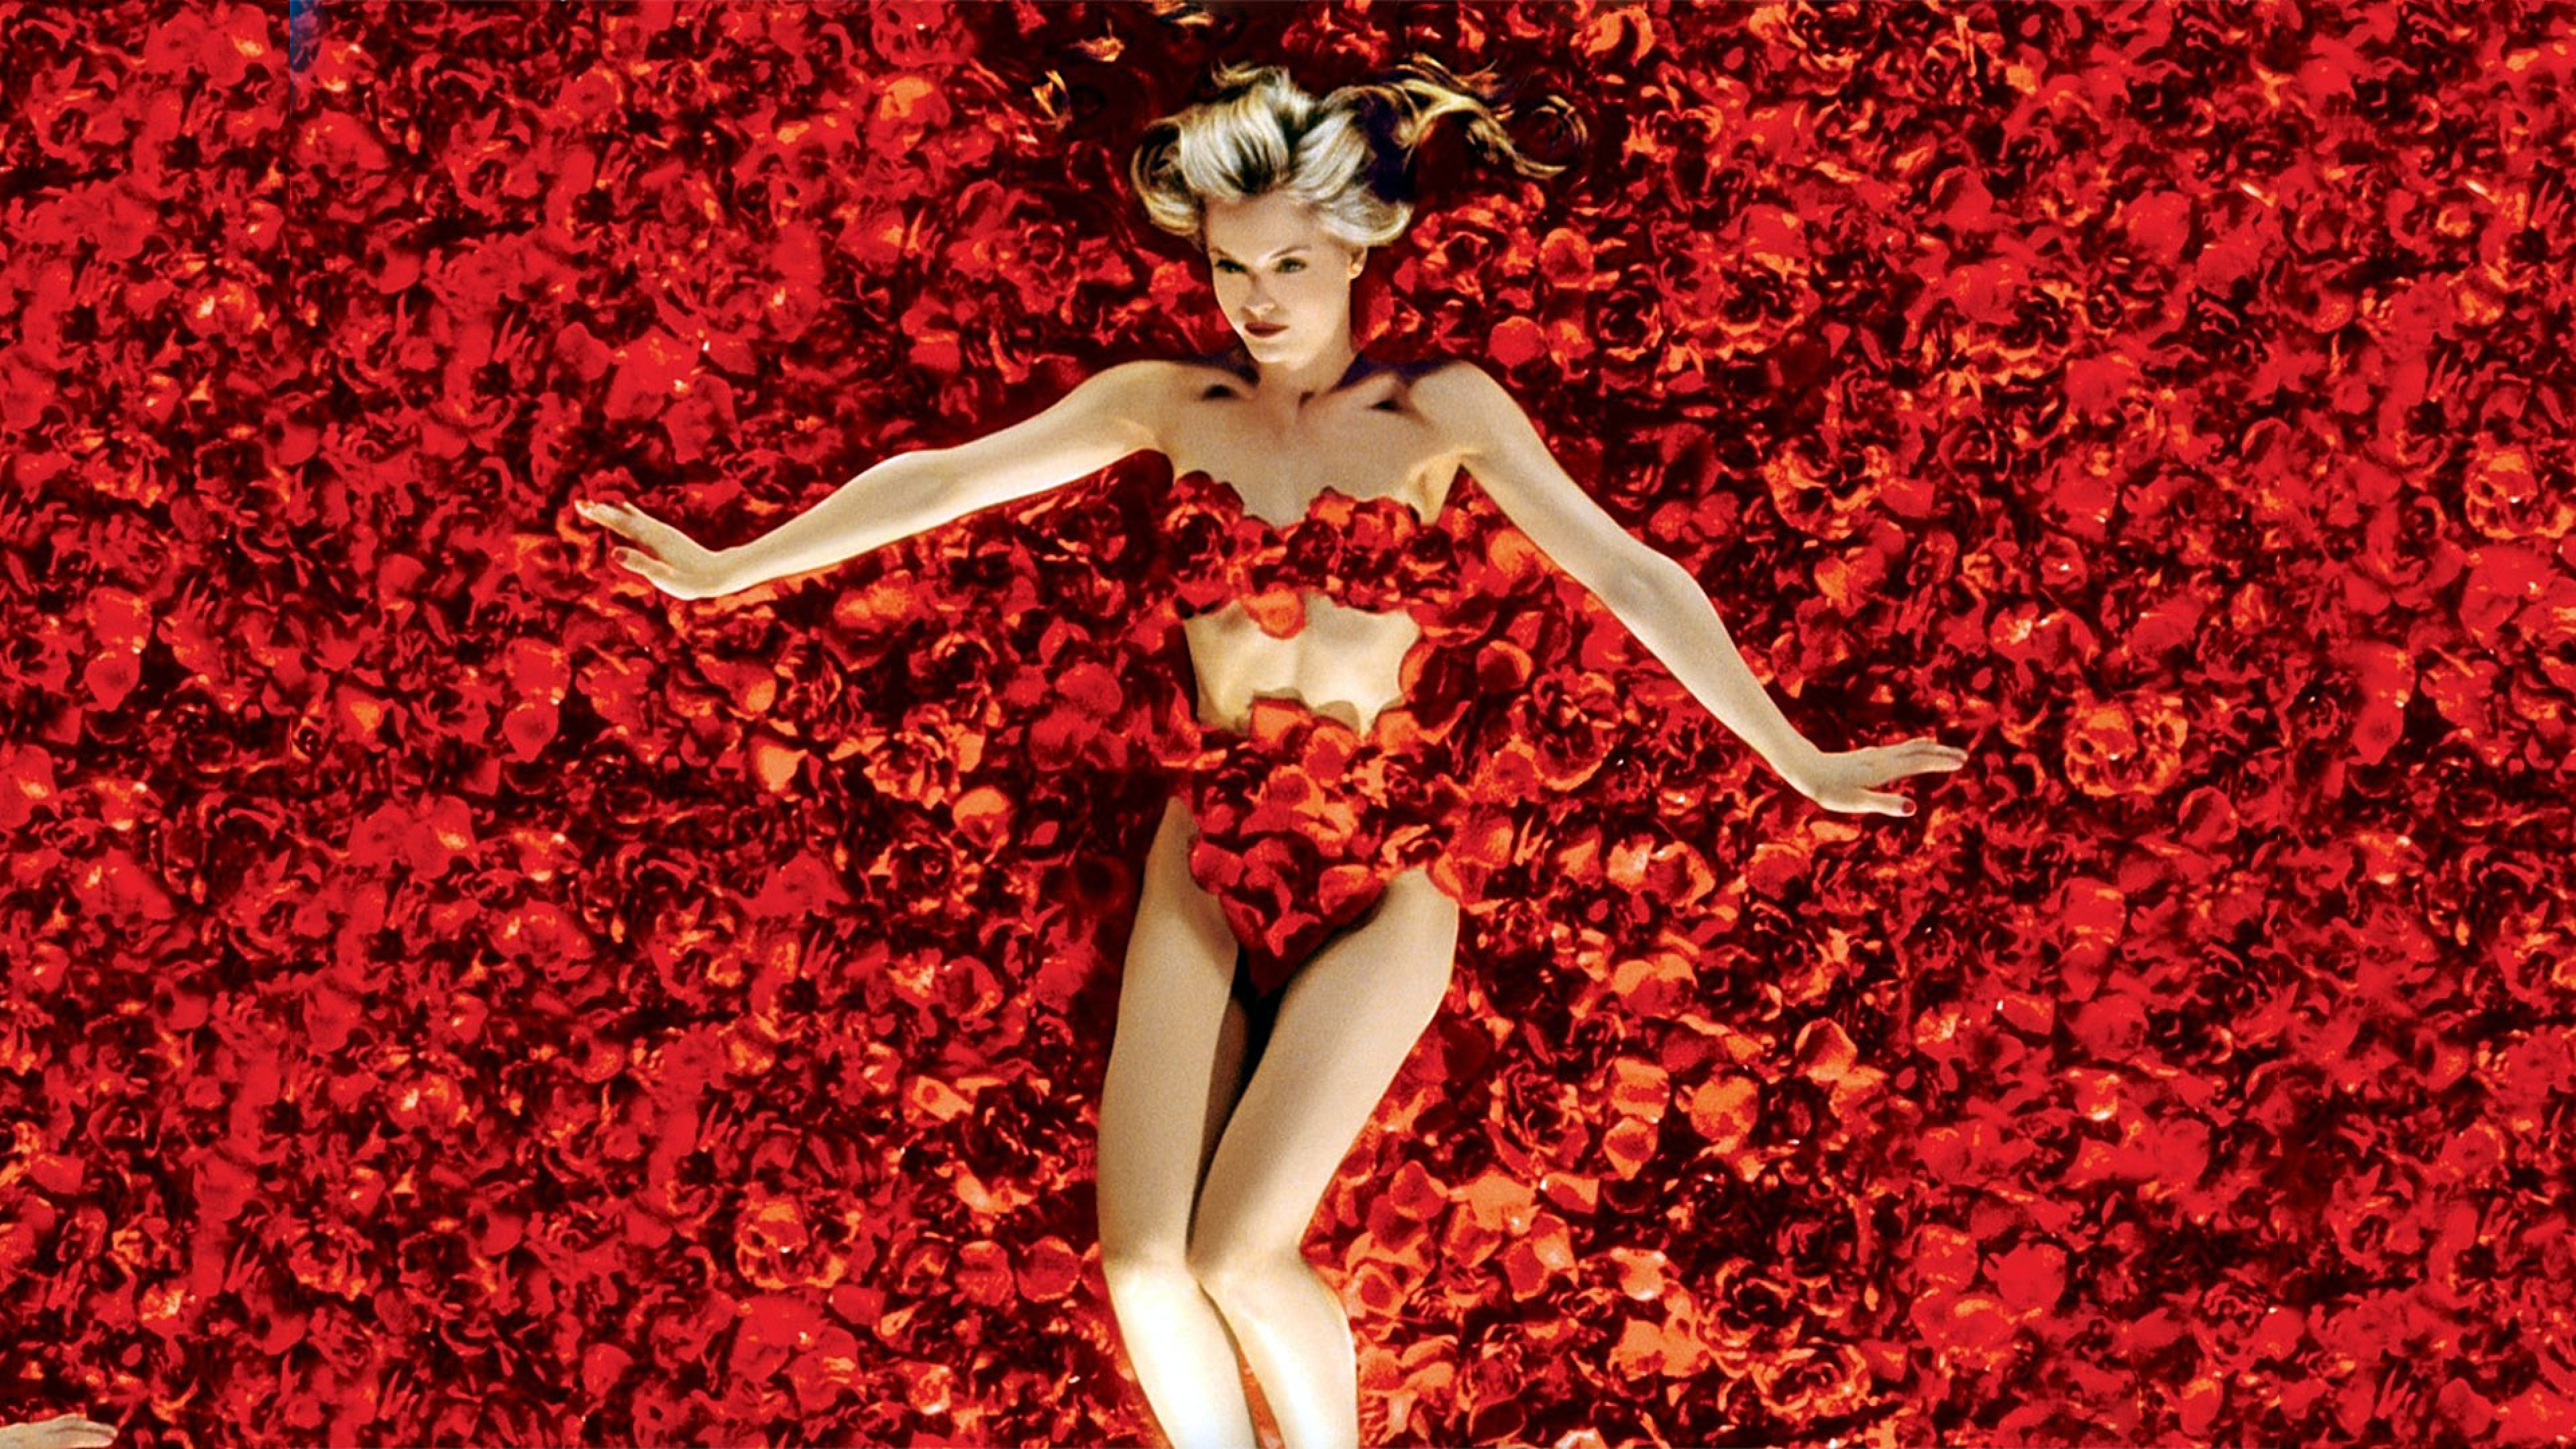 Amazing Background Wallpapers American Beauty High Resolution 3840x2160